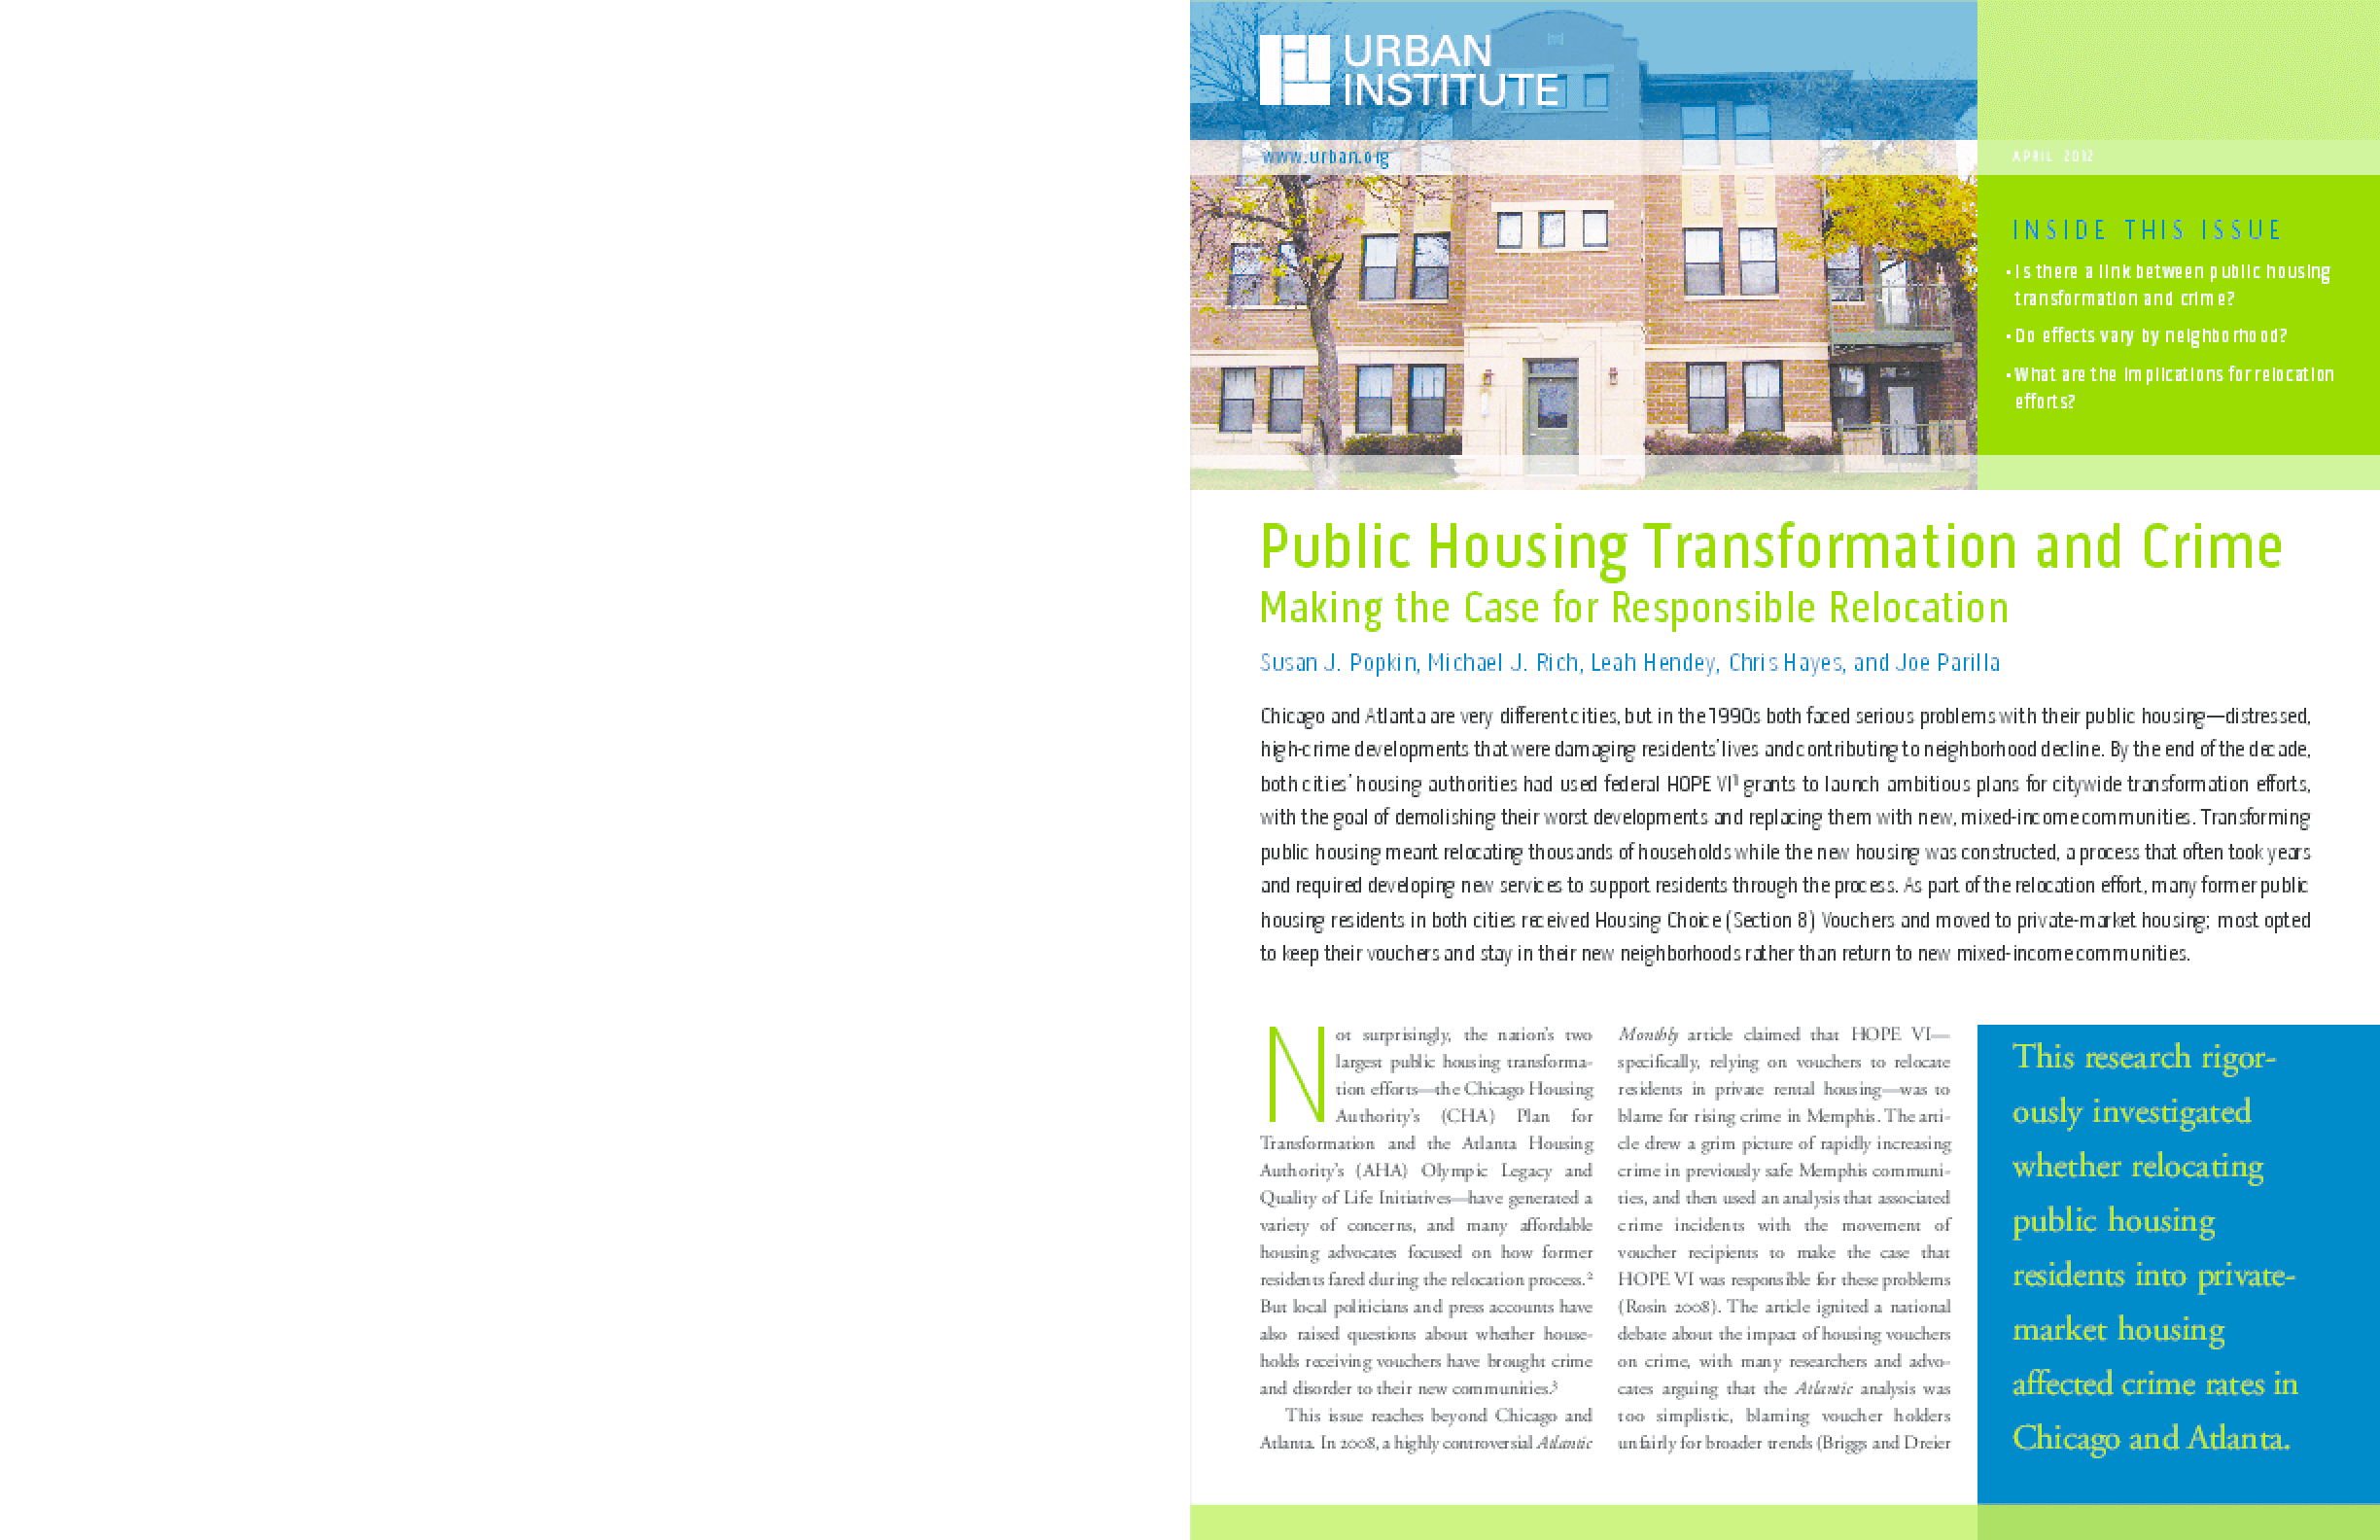 Public Housing Transformation and Crime: Making the Case for Responsible Relocation